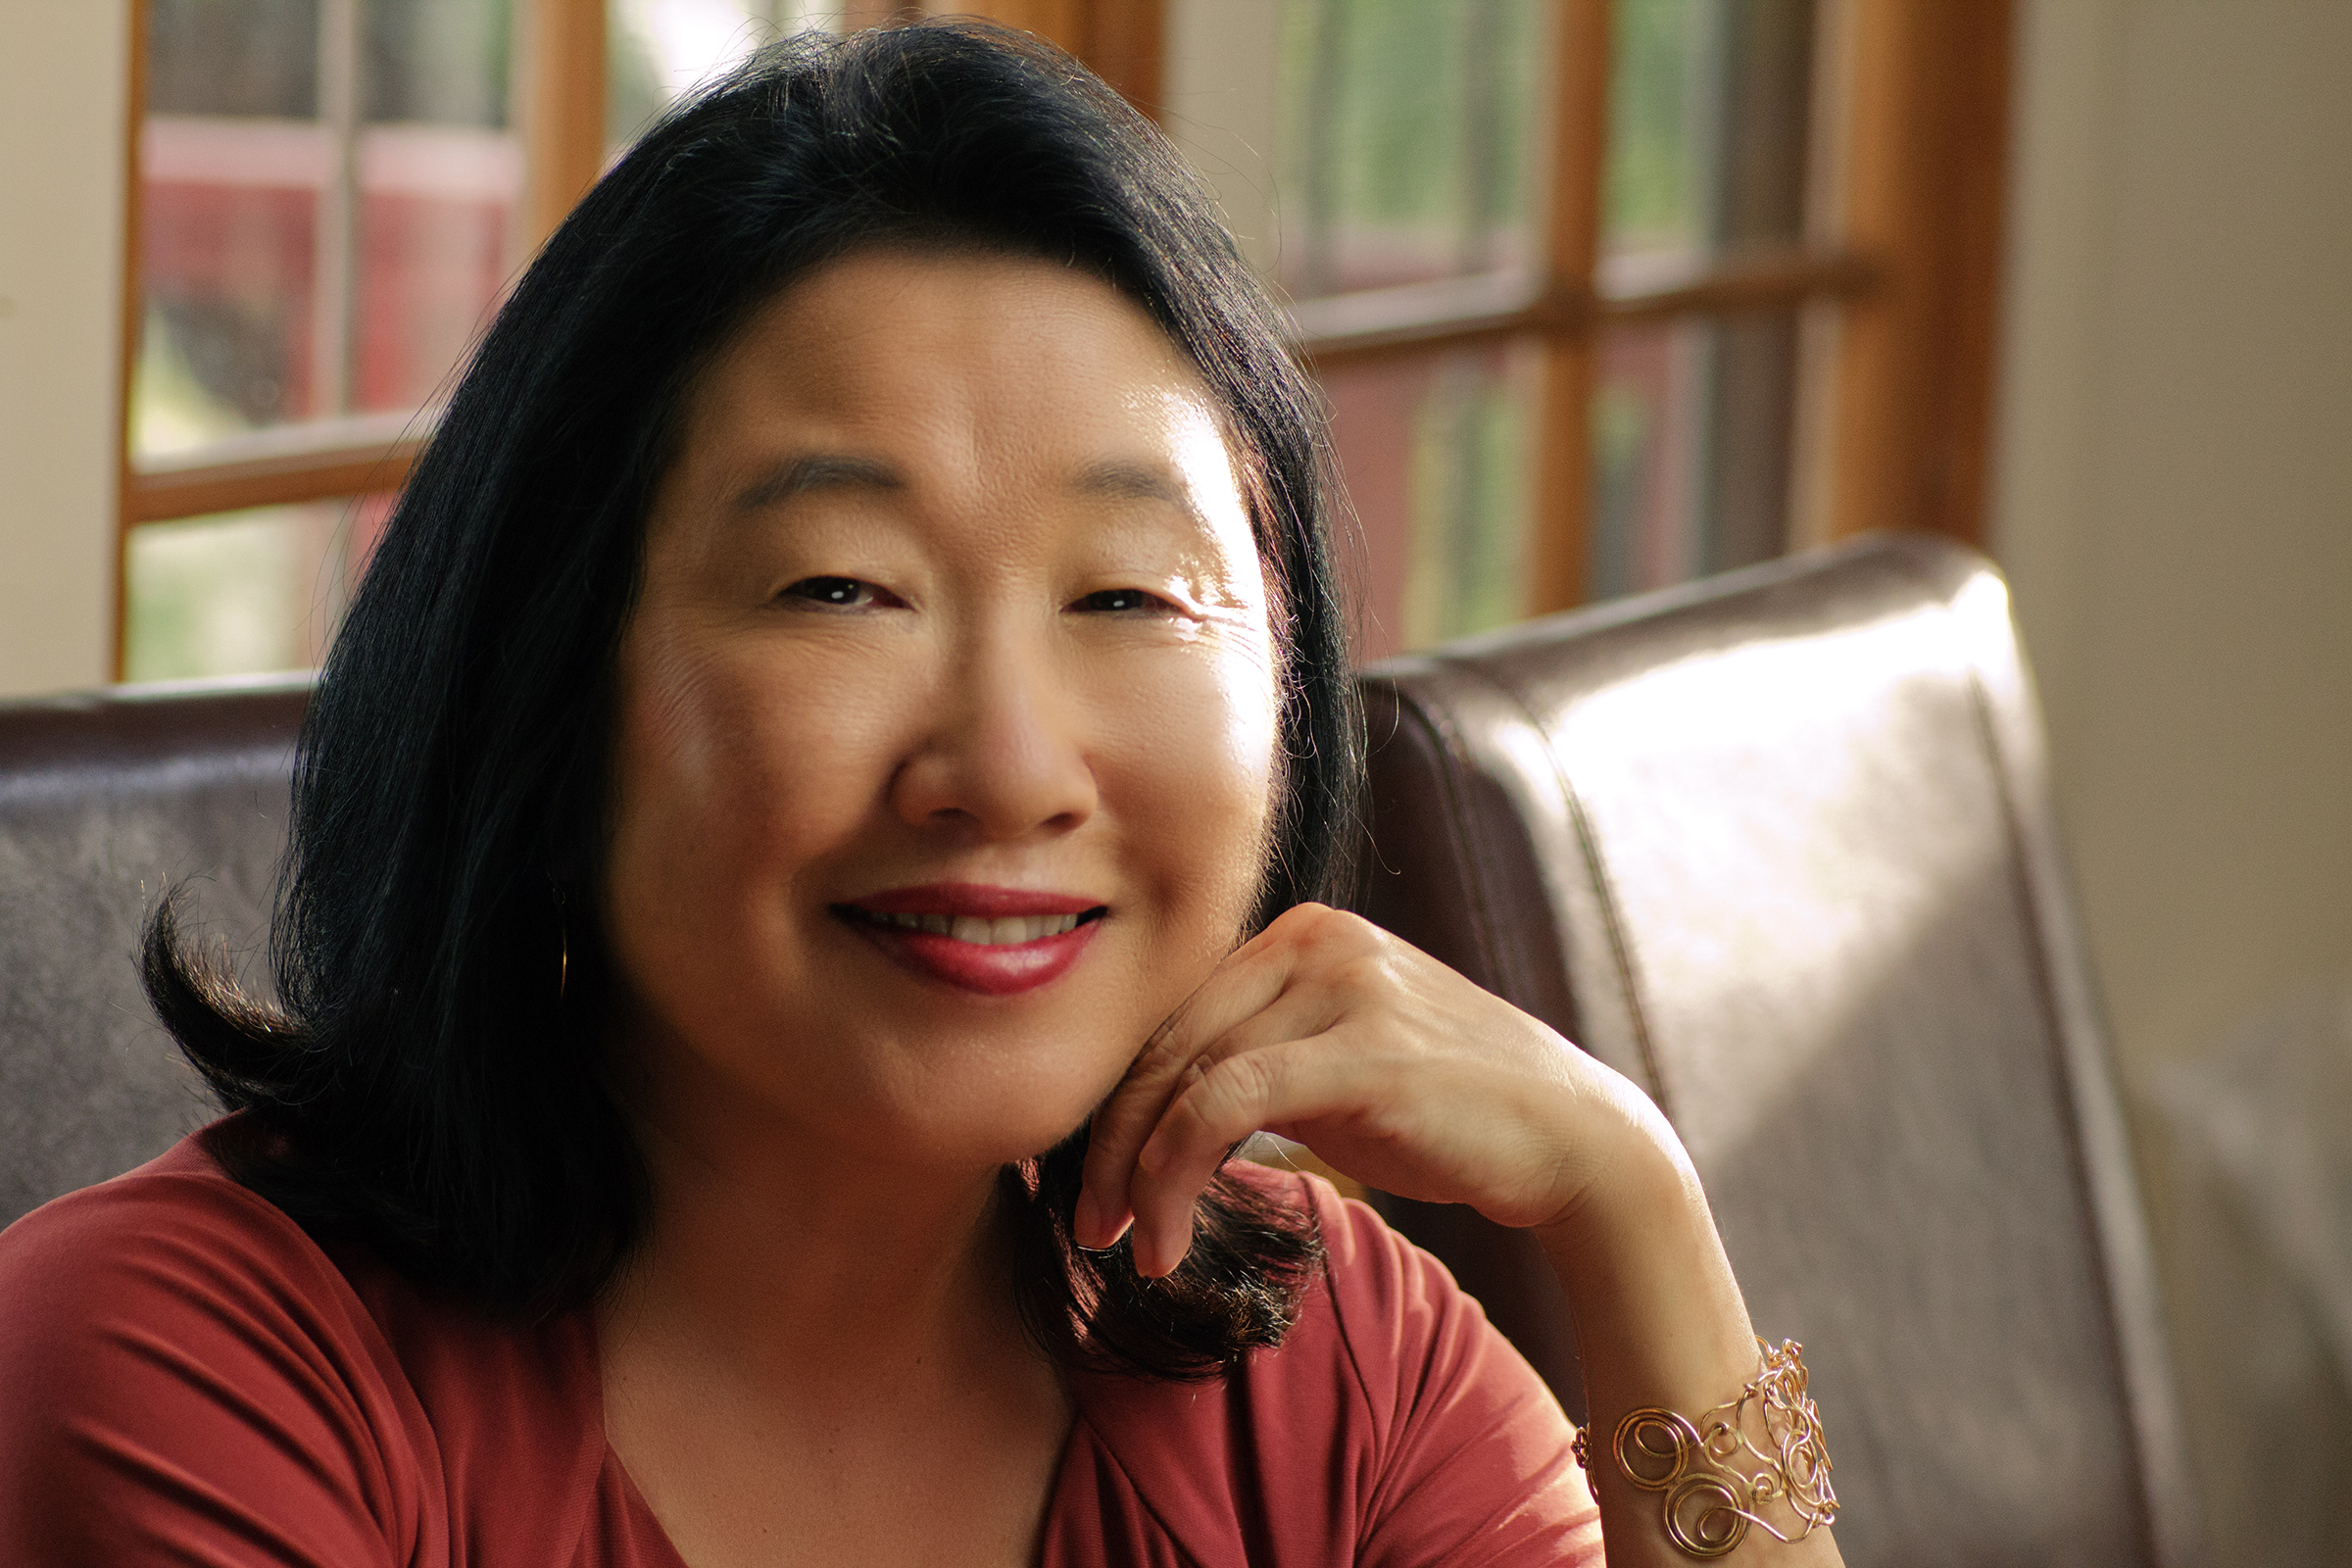 A photo of UCLA professor Renee Tajima-Peña.